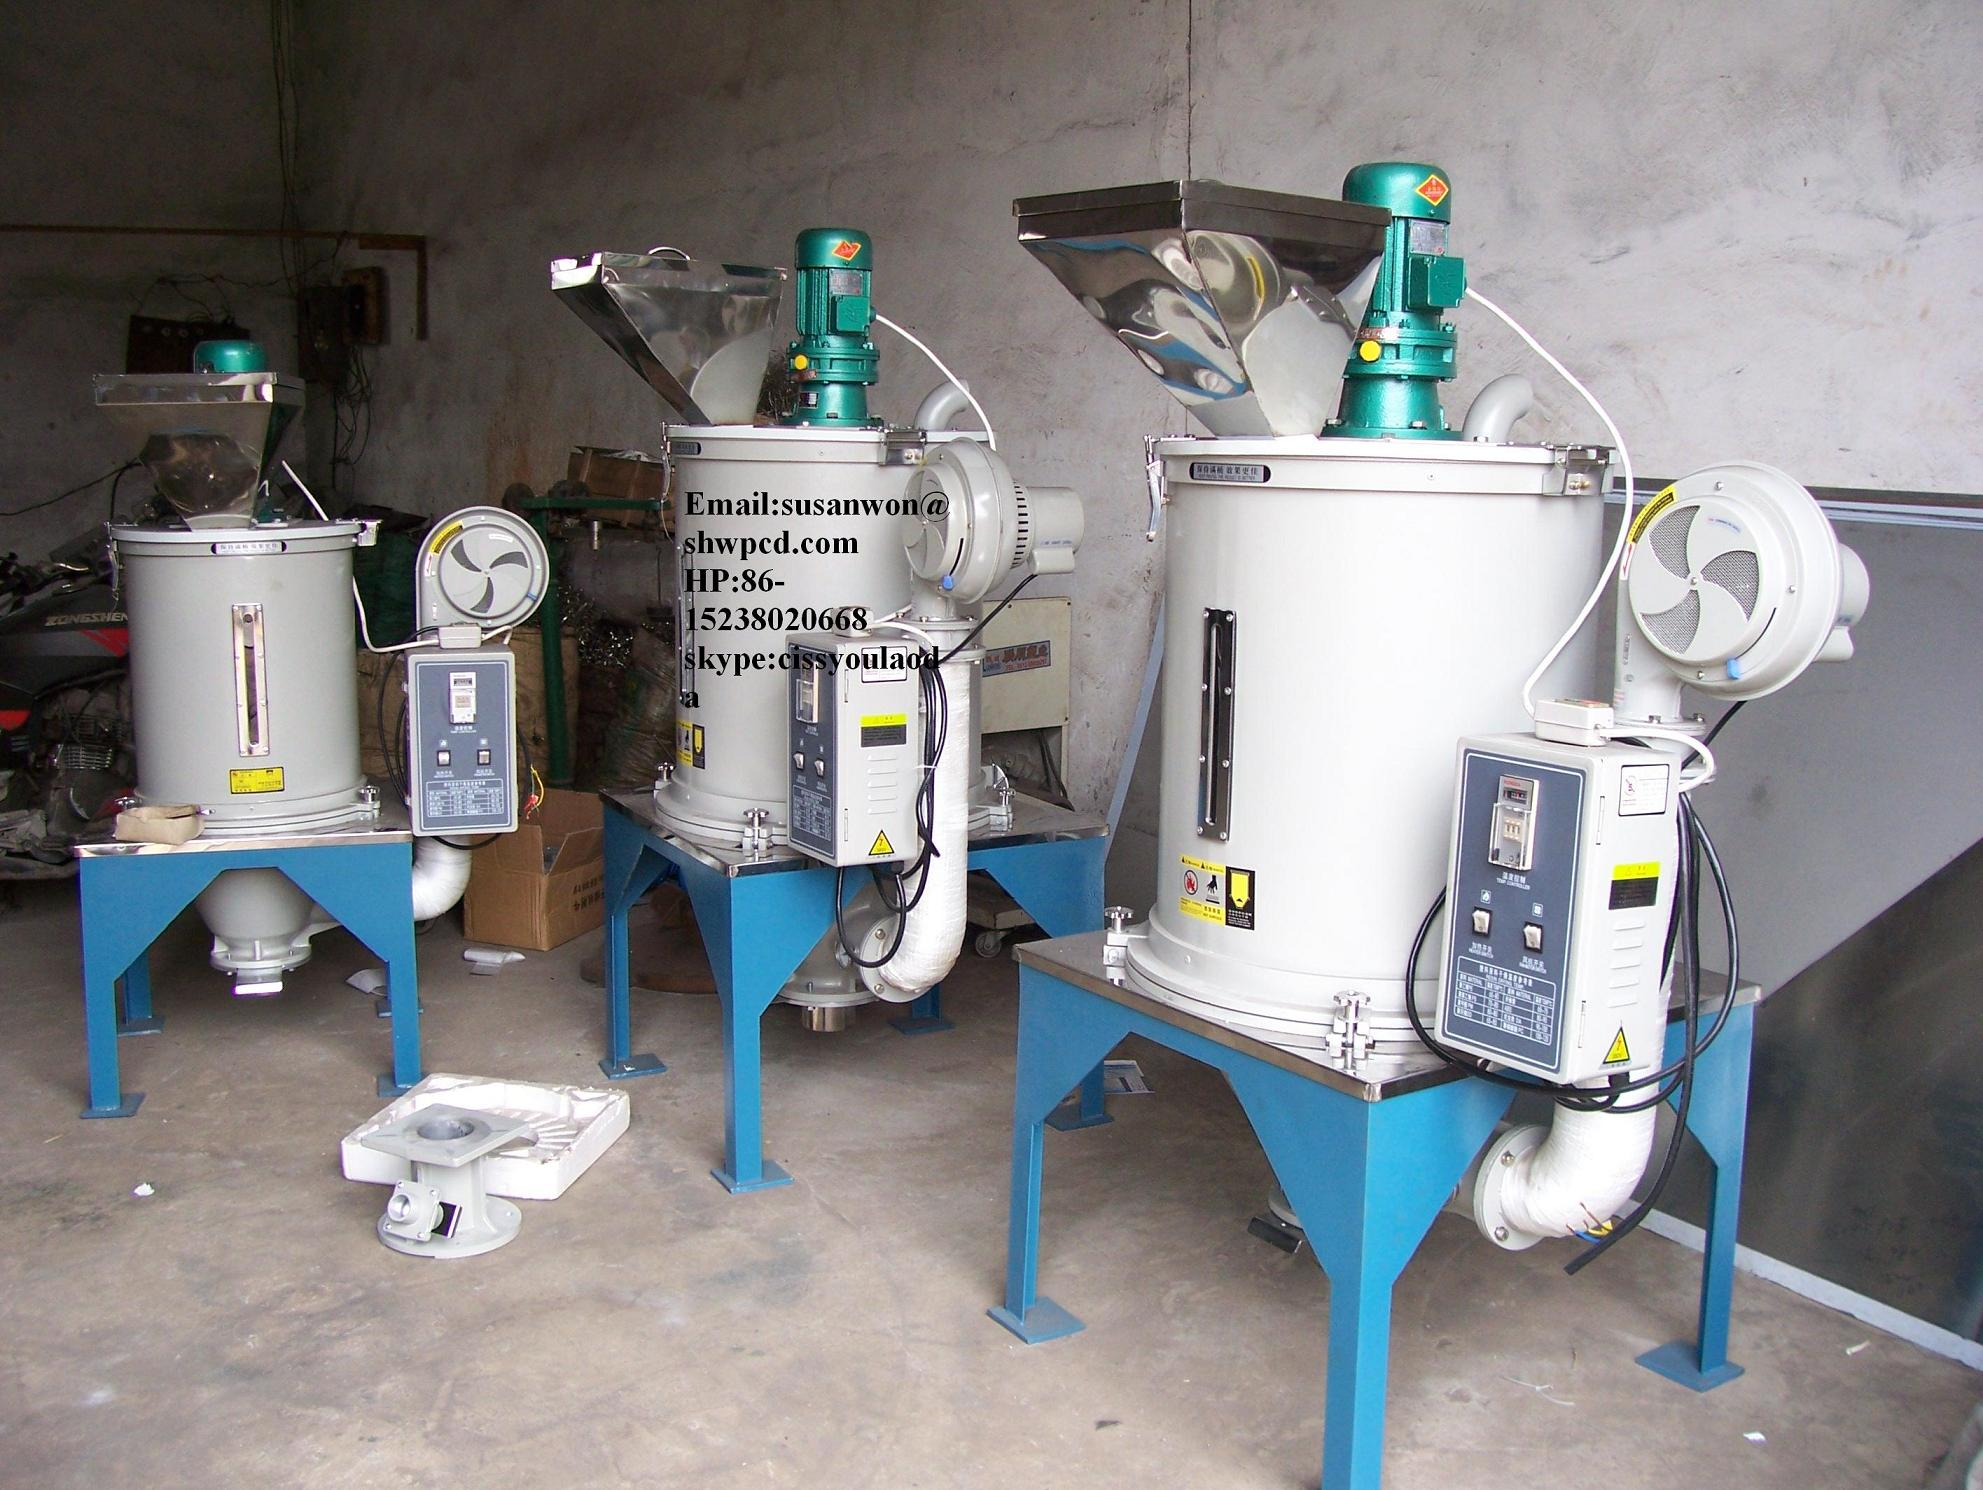 Sale floating fish food drying machine 0086-15238020668